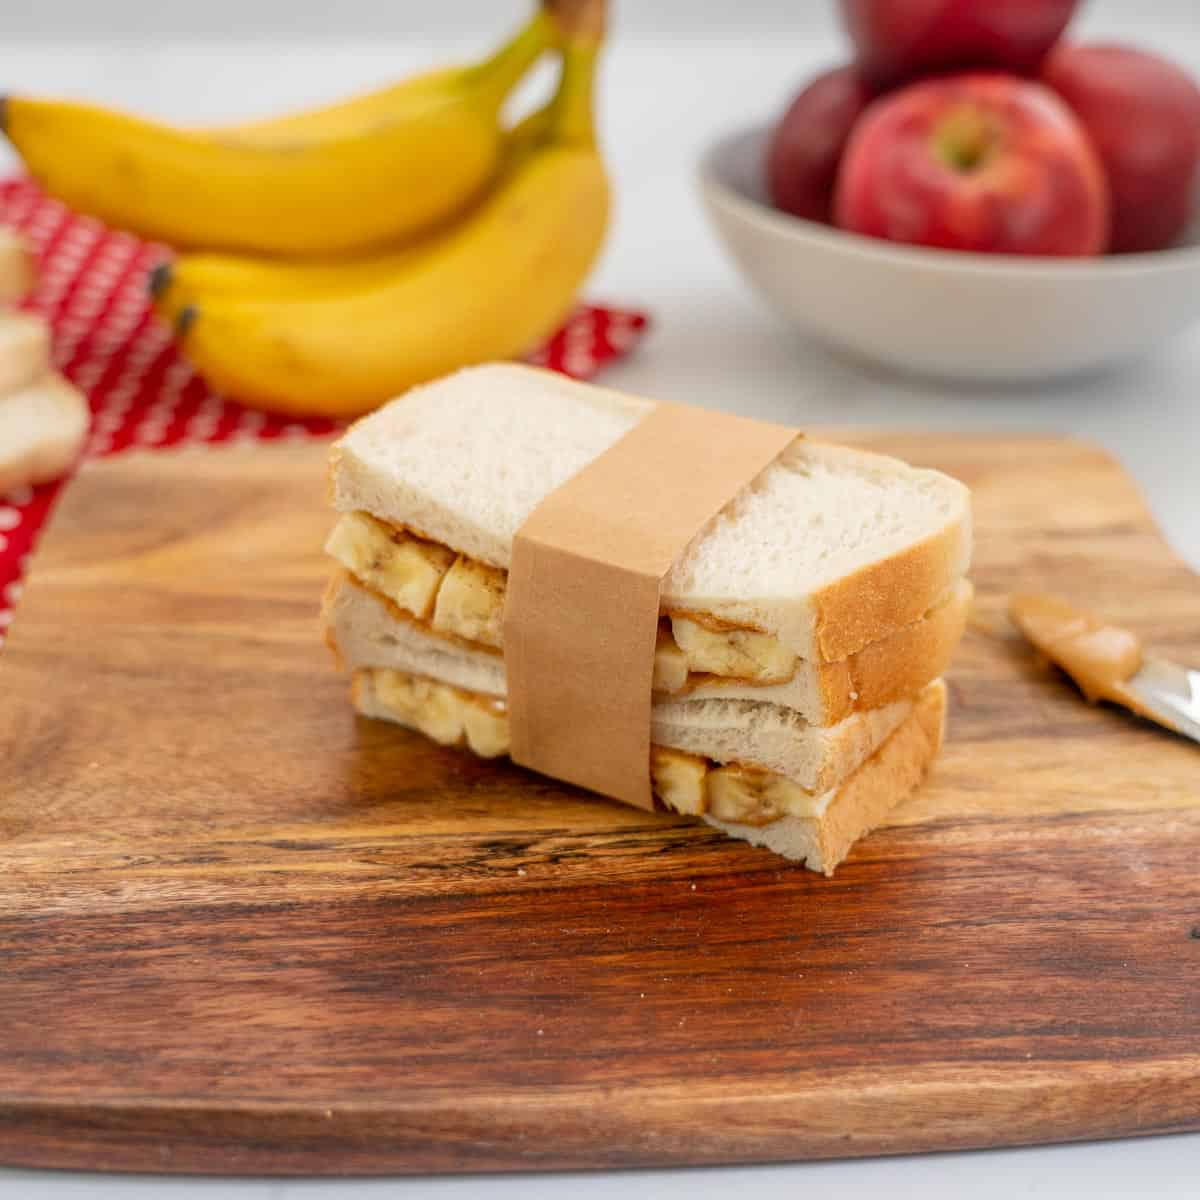 banana and peanut butter sandwich held together with a strip of brown paper